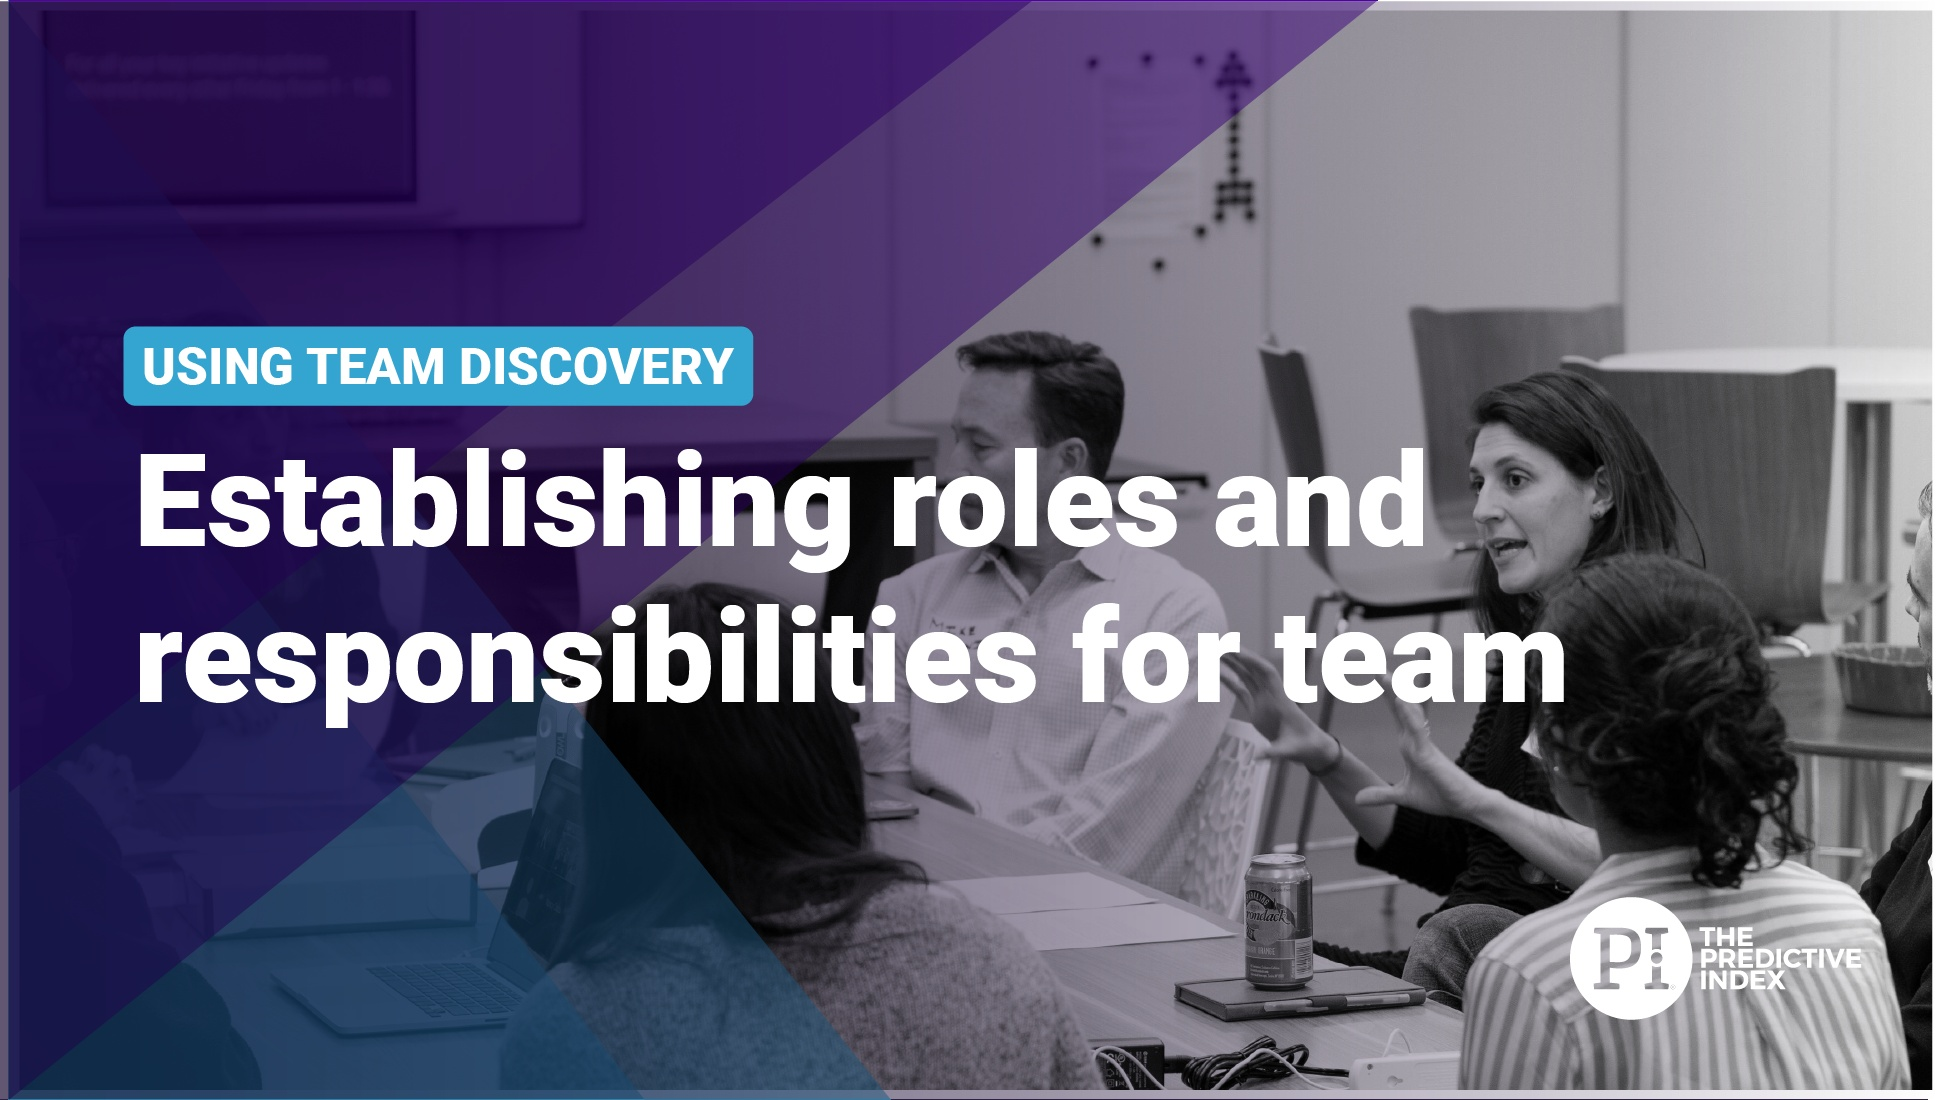 Using Team Discovery to establish roles and responsibilities on a team